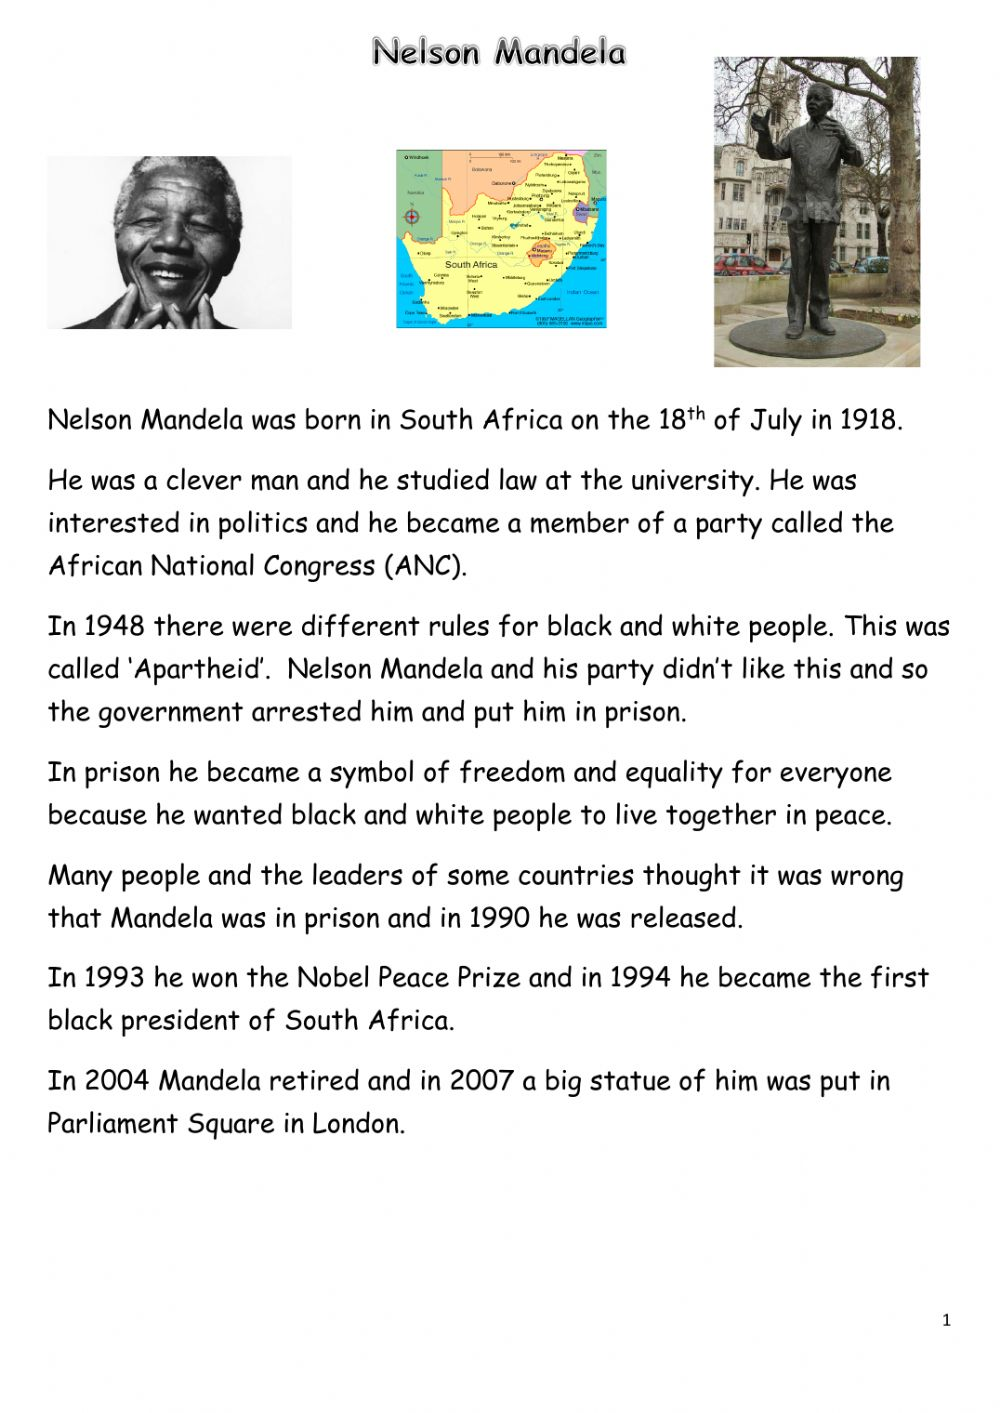 medium resolution of Nelson Mandela online worksheet